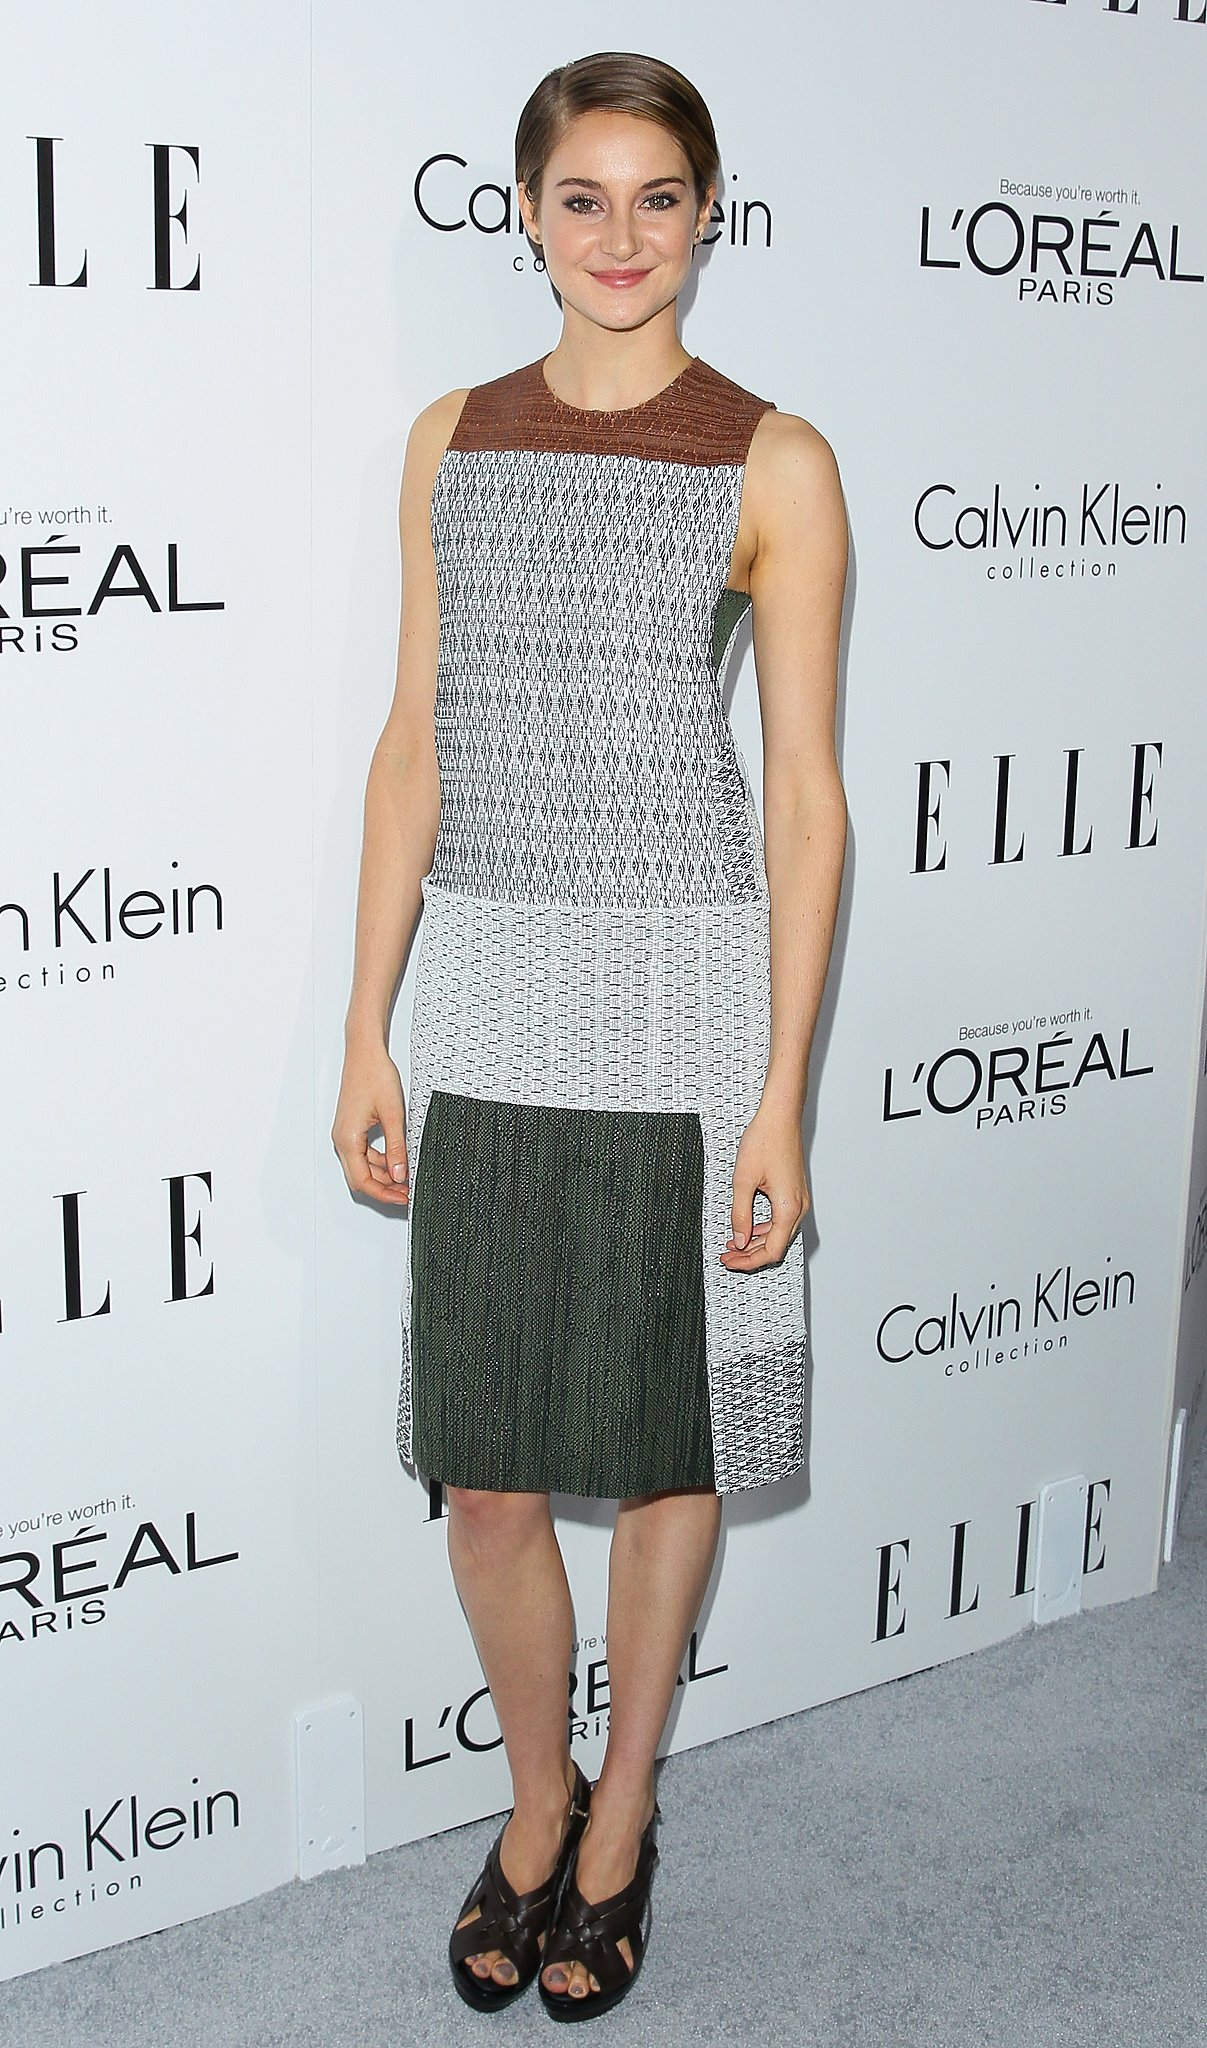 Shailene Woodley in Colorblock Calvin Klein at the 2013 Elle Women in Hollywood Event